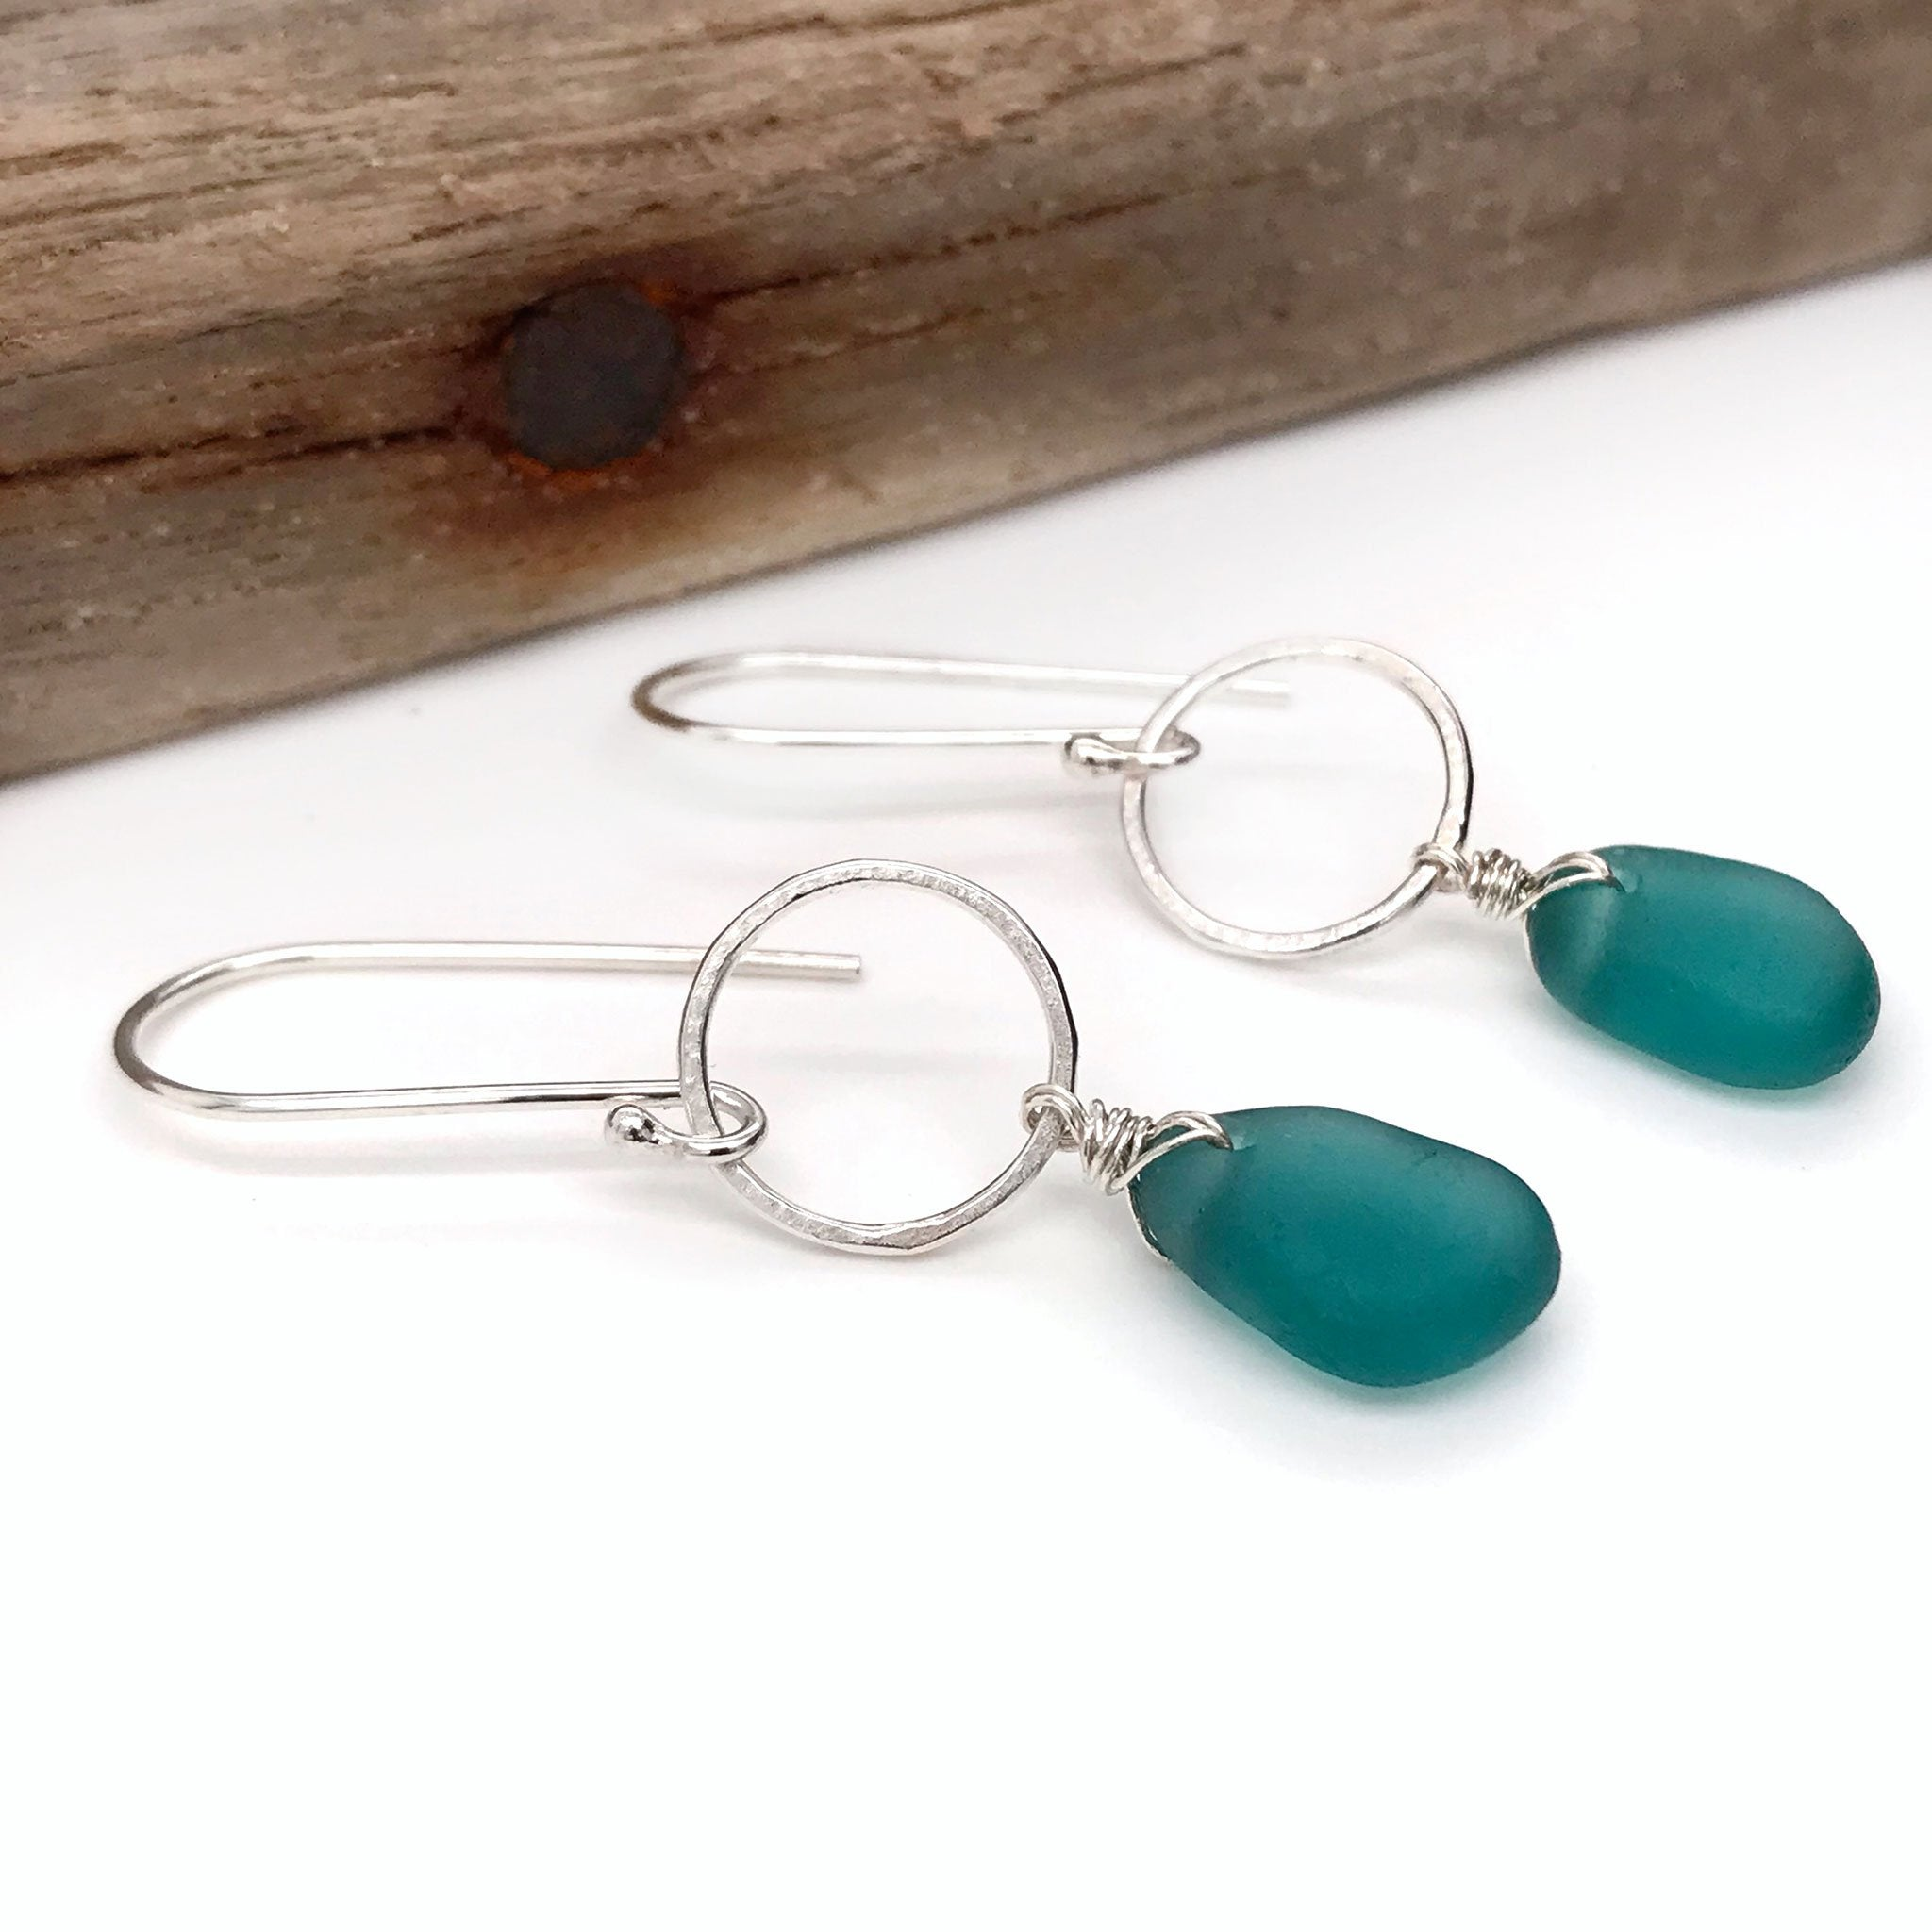 teal earrings sterling silver circle drop design Kriket Broadhurst jewellery